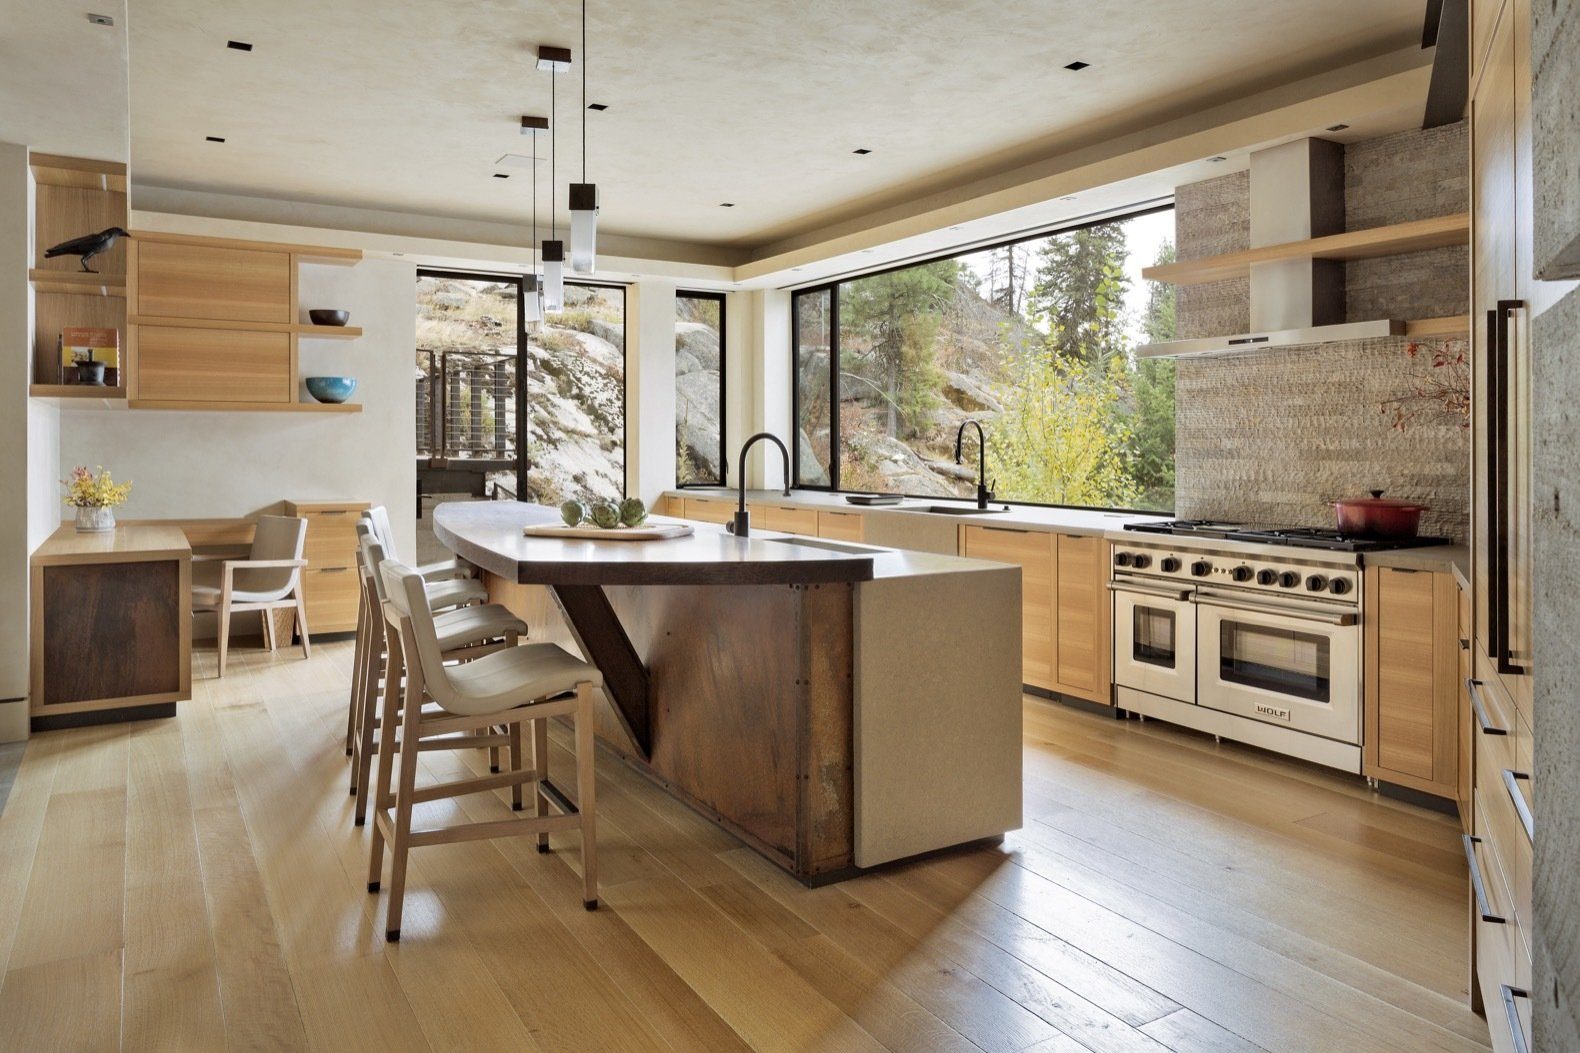 Kitchen, Dishwasher, Wall Oven, Range Hood, Cooktops, Medium Hardwood, Range, Recessed, Pendant, Wood, Refrigerator, and Concrete The light-filled kitchen is fitted out with glass fiber-reinforced concrete counters, quartern-sawn eucalyptus cabinets, as well as Sub-Zero, Wolf and Miele appliances.    Best Kitchen Cooktops Recessed Wall Oven Wood Dishwasher Photos from This Modern Cliff House Seamlessly Knits Into a Rocky Idaho Lakefront